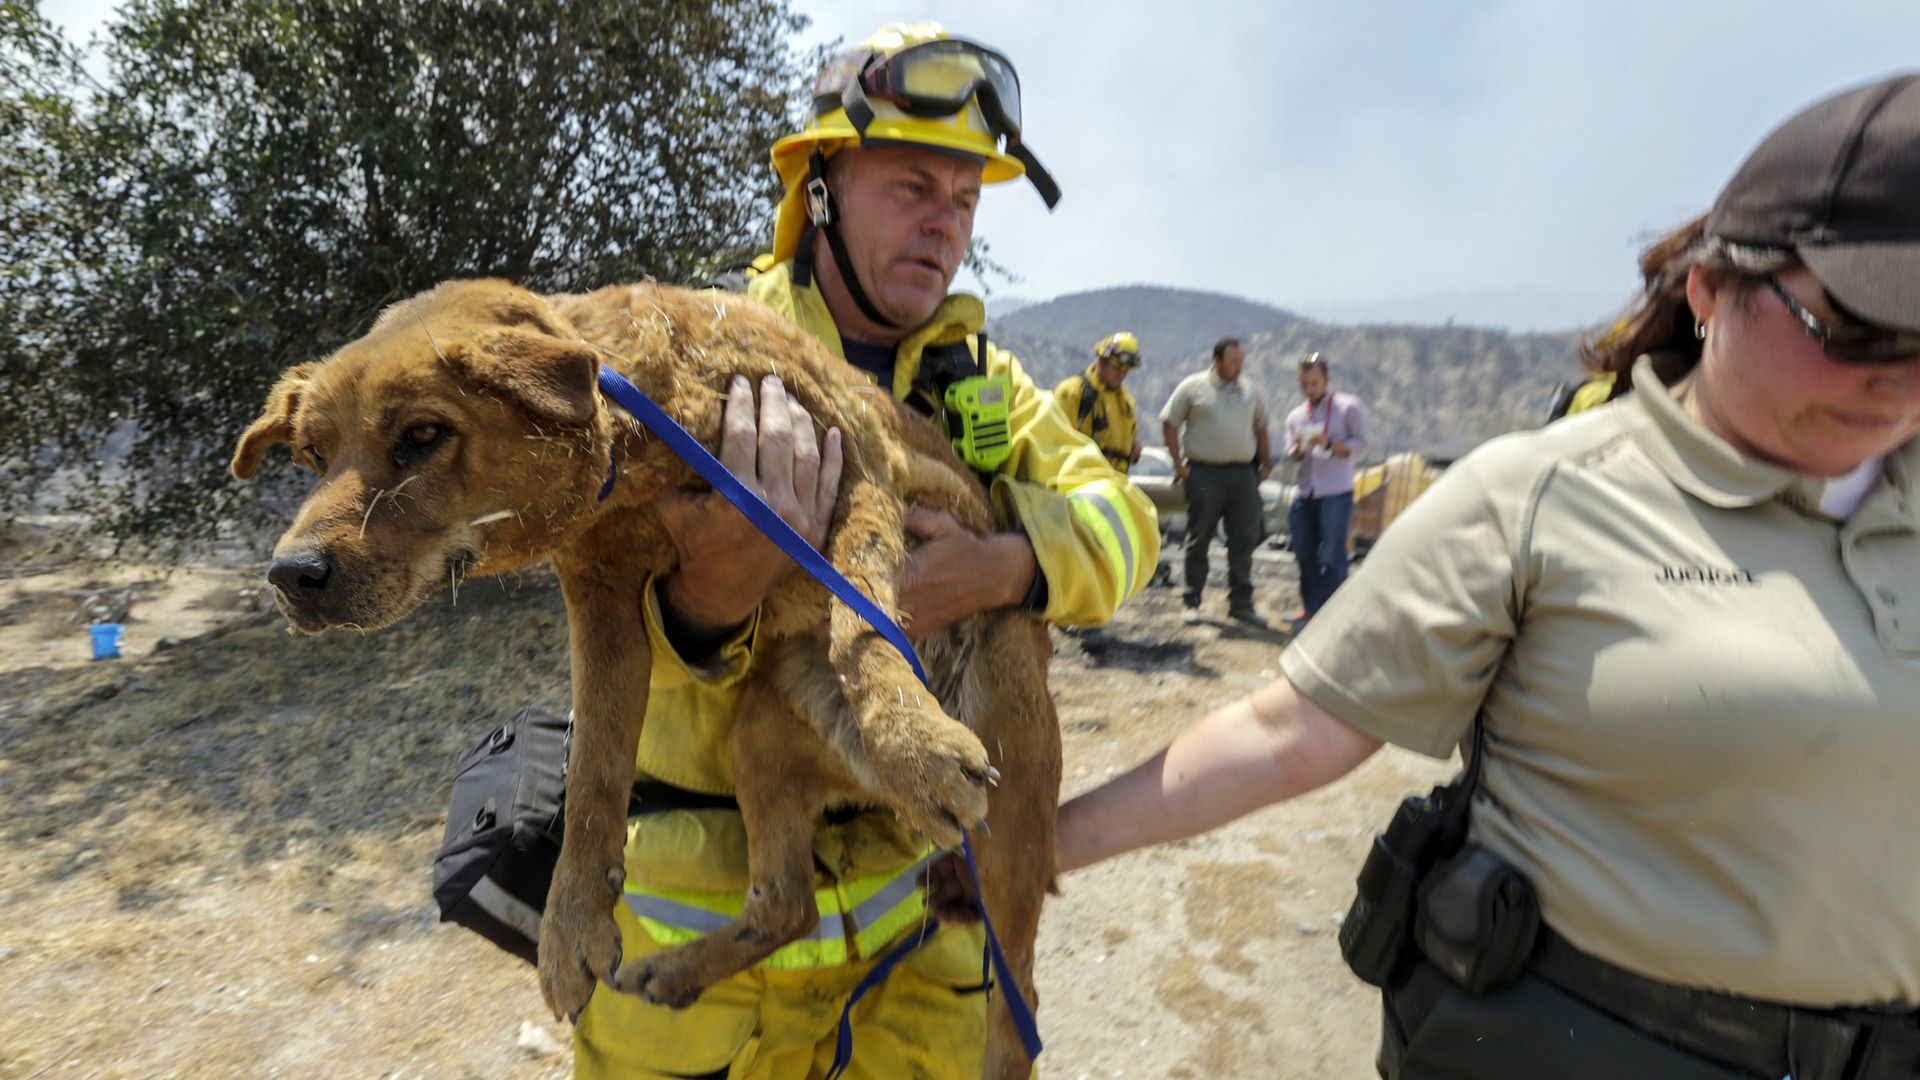 A fireman carrying a dog